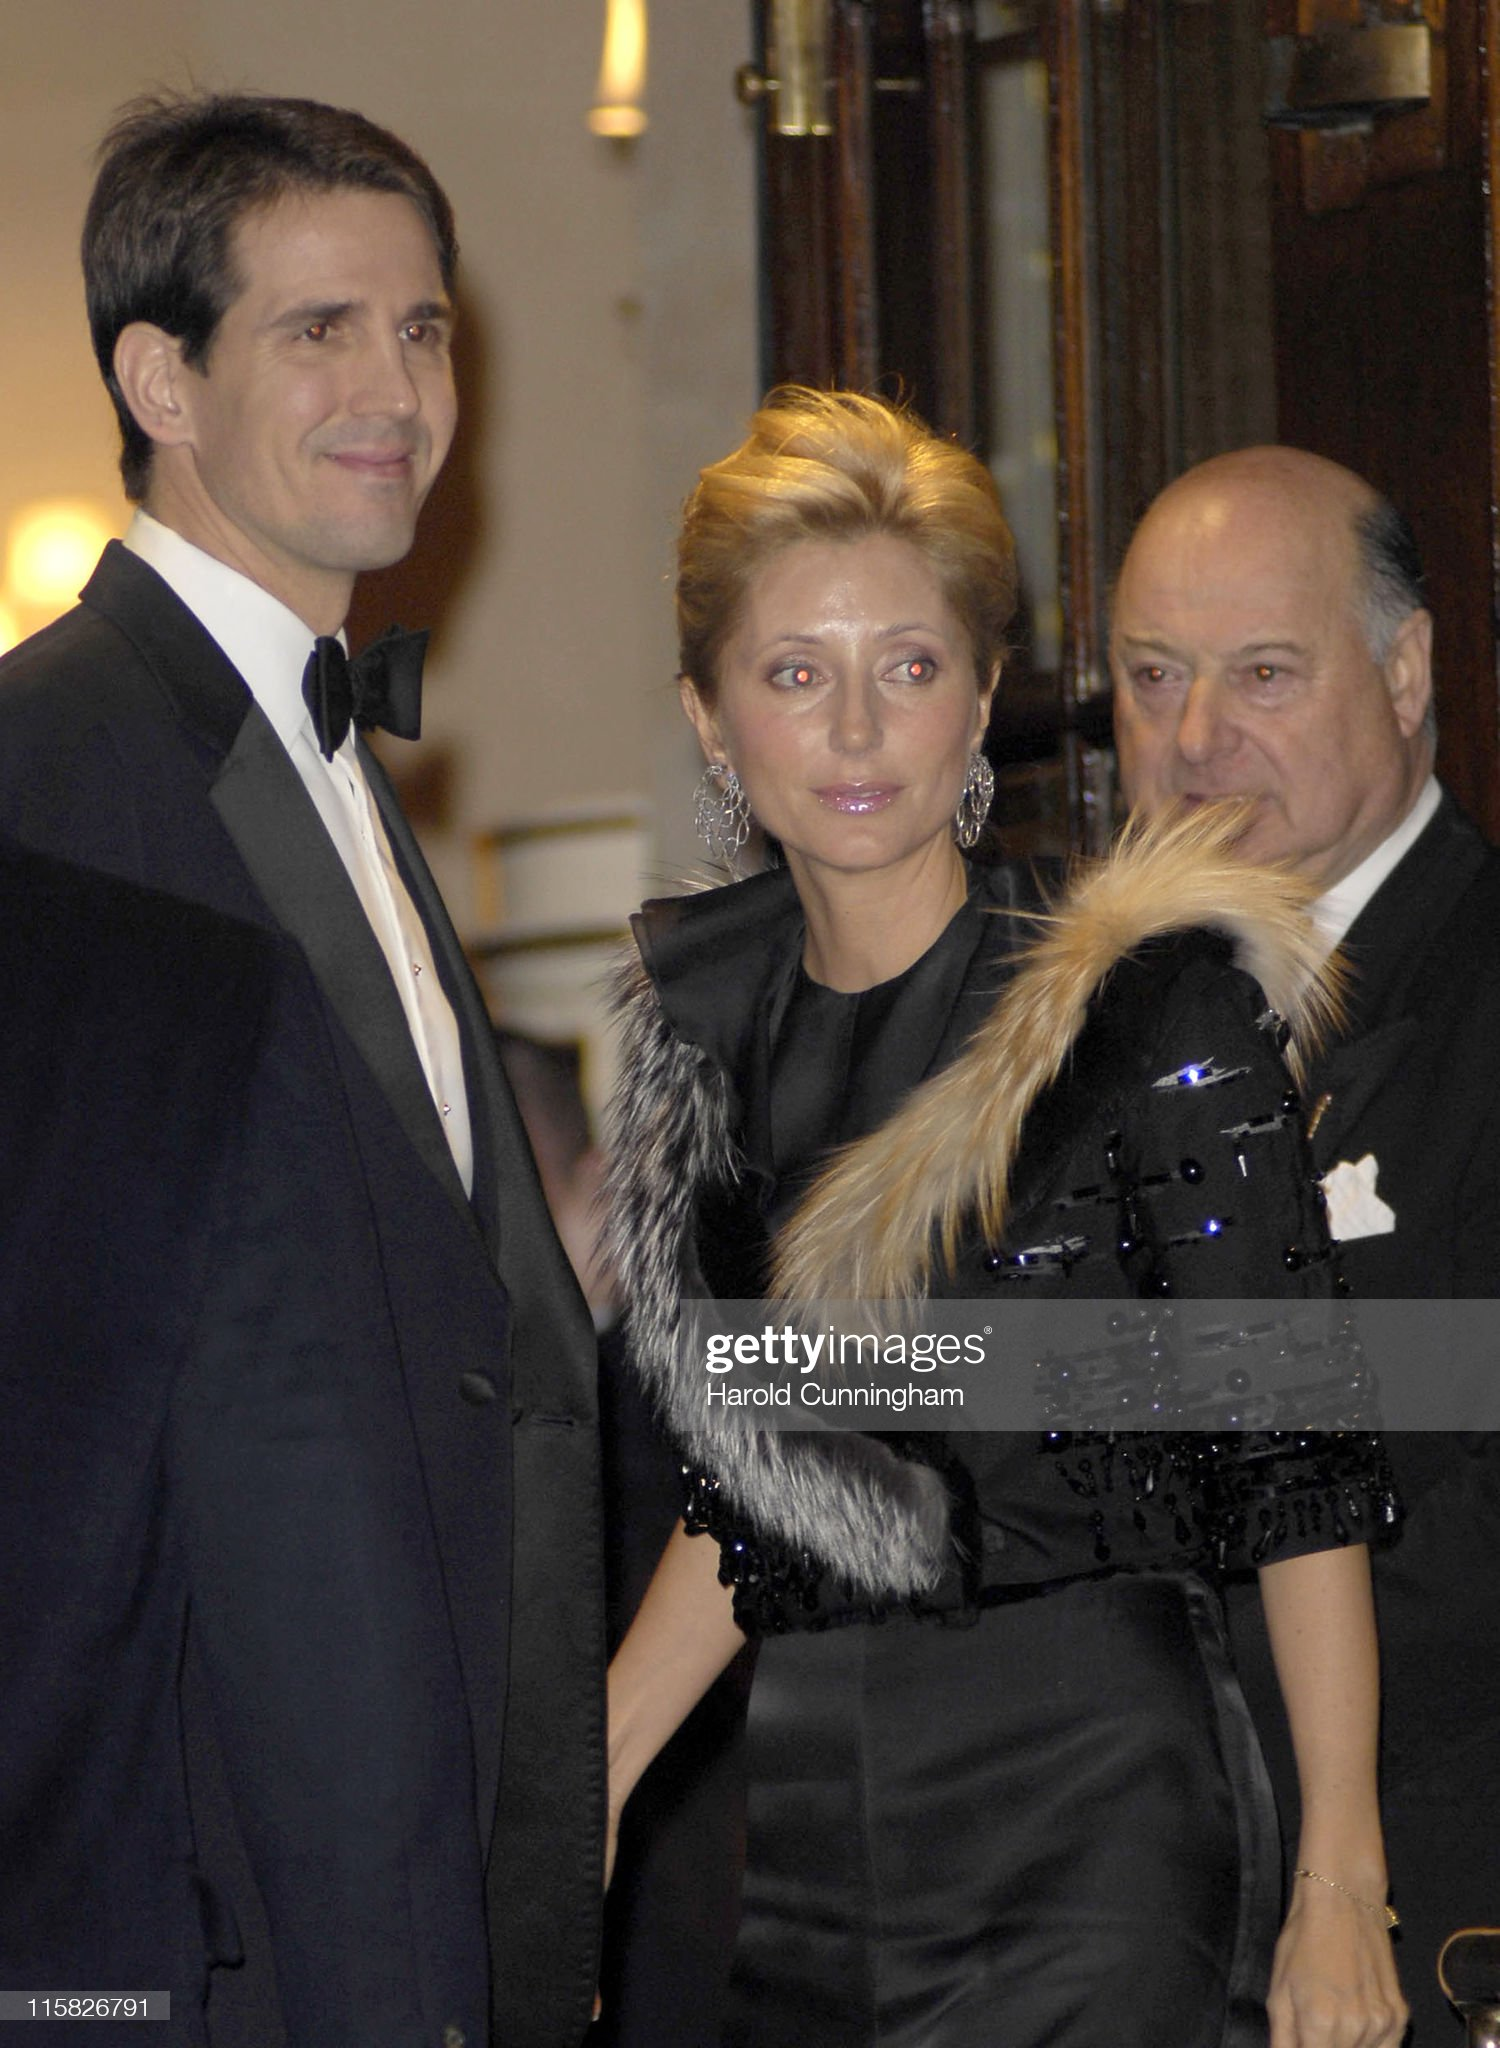 HRH The Queen's 80th Birthday Party - Arrivals - December 5, 2006 : News Photo